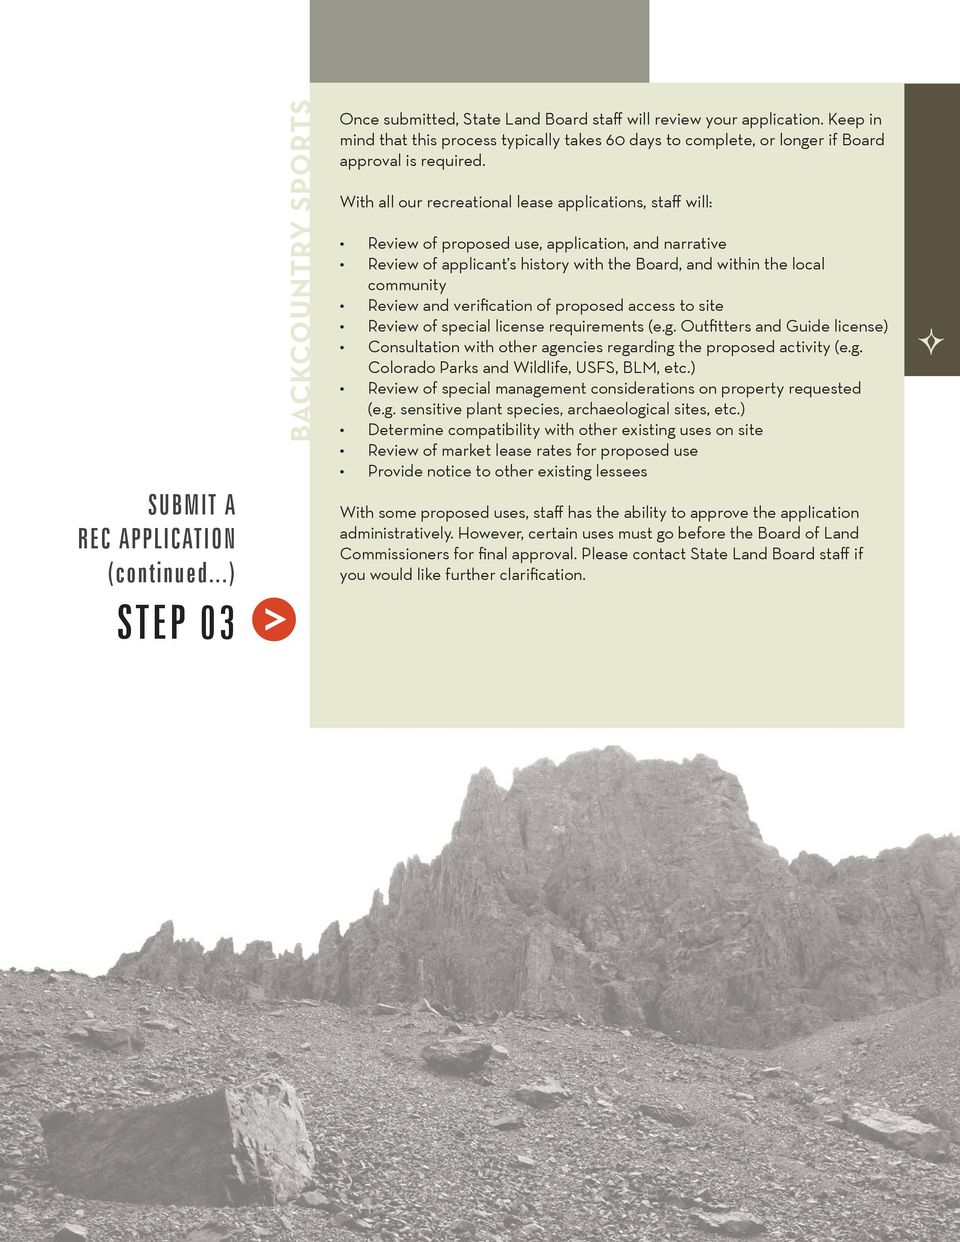 With all our recreational lease applications, staff will: Review of proposed use, application, and narrative Review of applicant s history with the Board, and within the local community Review and